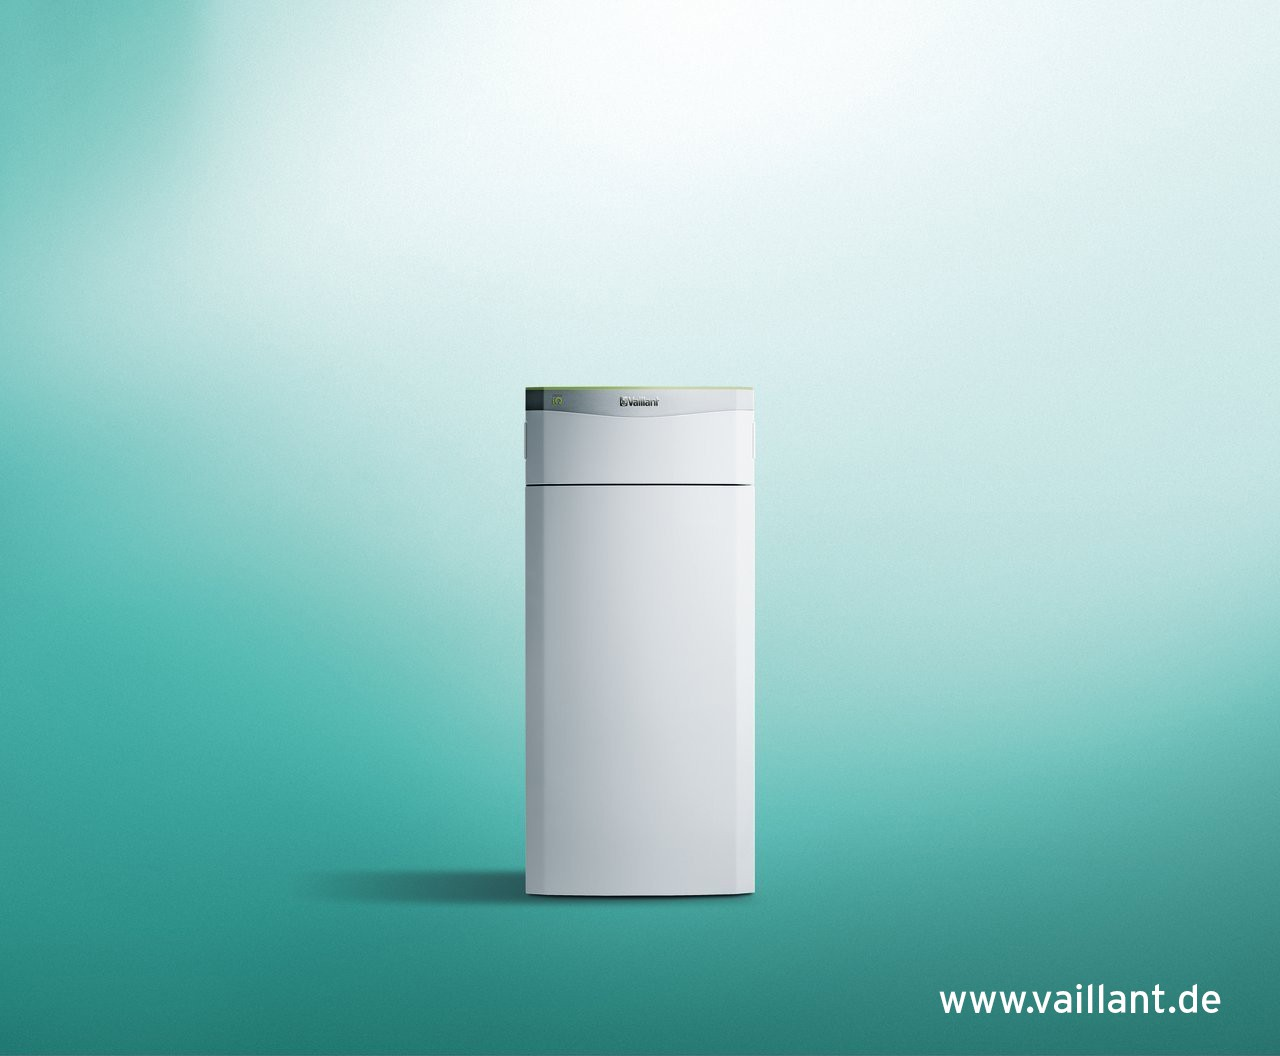 Vaillant VAILLANT Set 4.64 flexoTHERM